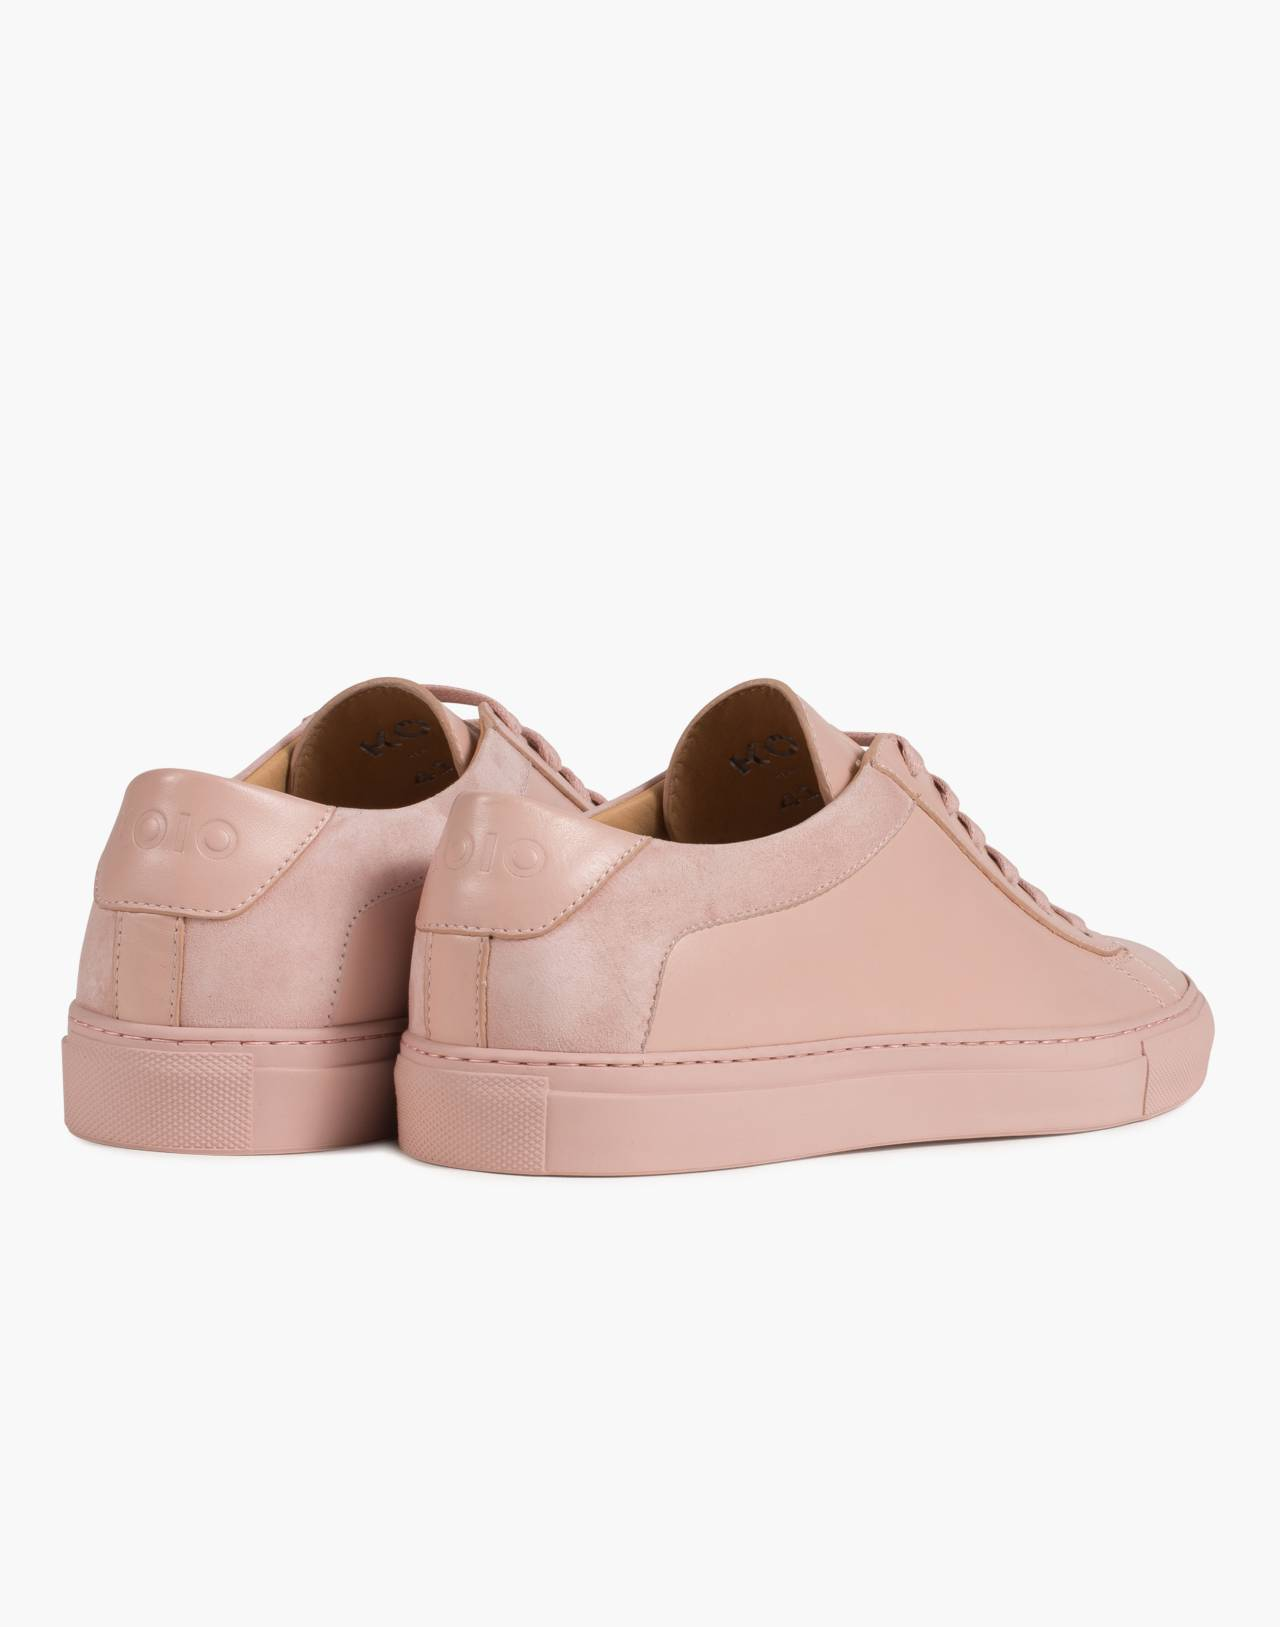 Unisex Koio Capri Fiore Low-Top Sneakers in Pink Leather in pink image 2